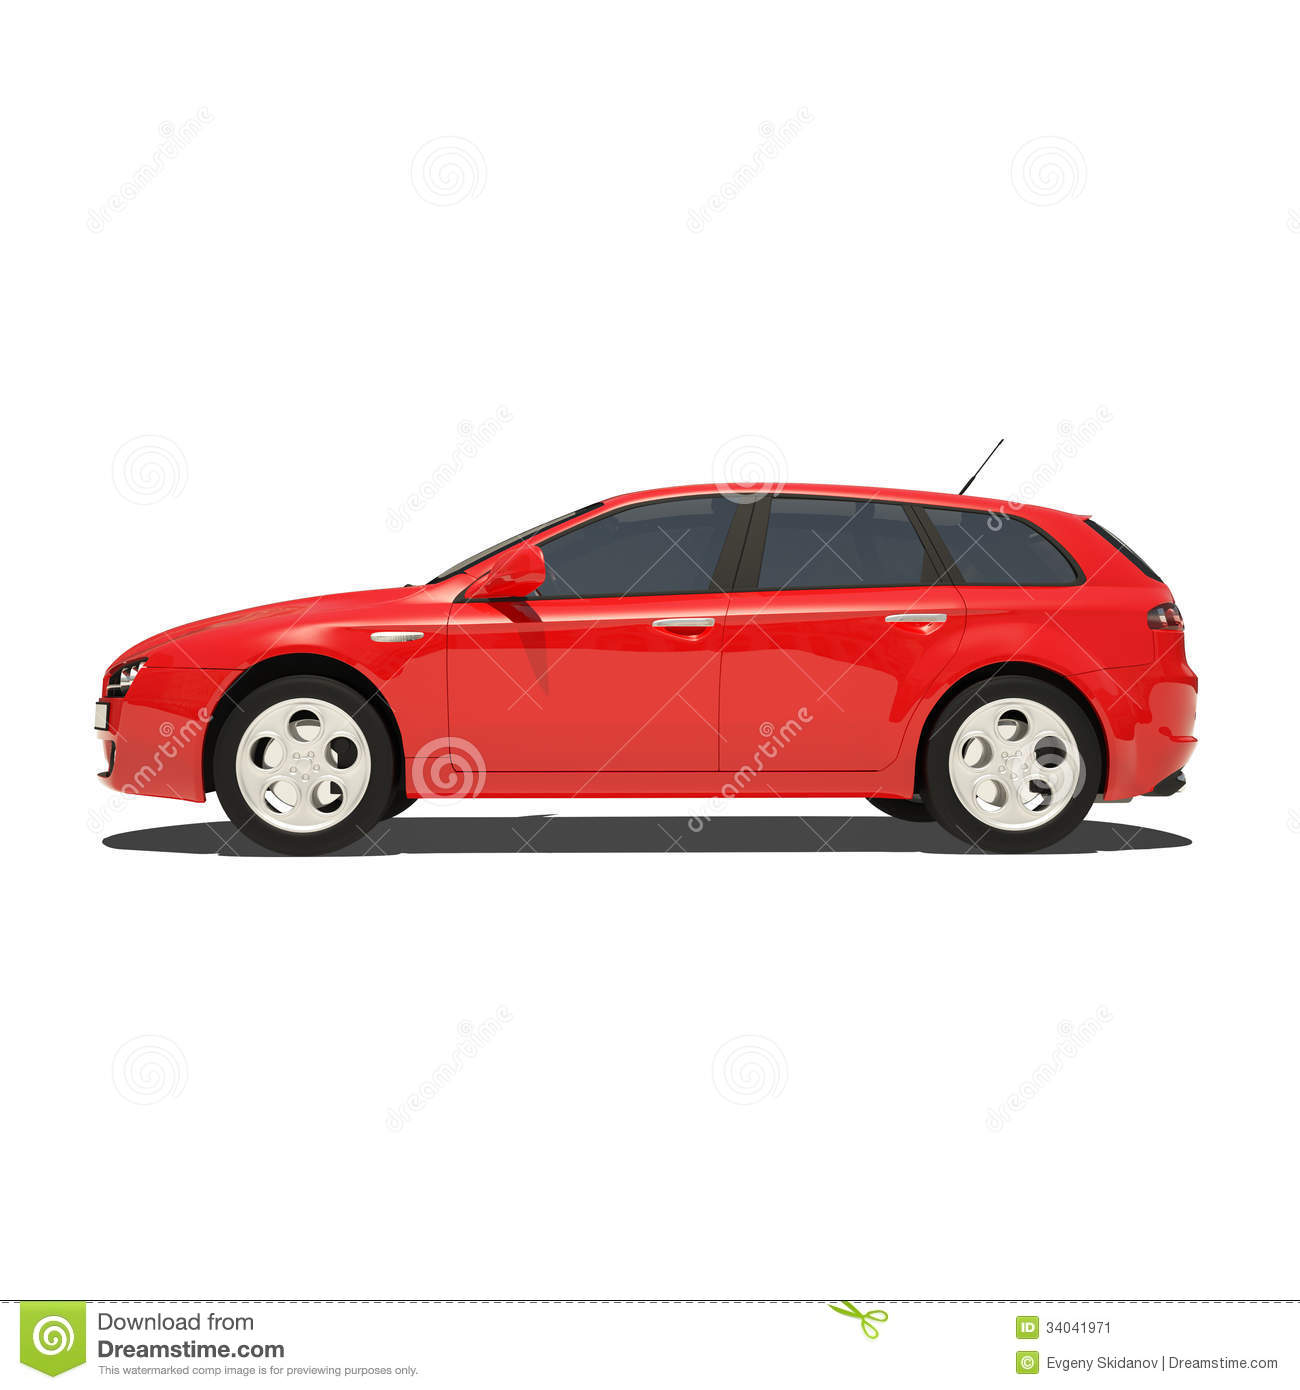 White Tire Paint >> Red Car Isolated On White Background Stock Image - Image: 34041971